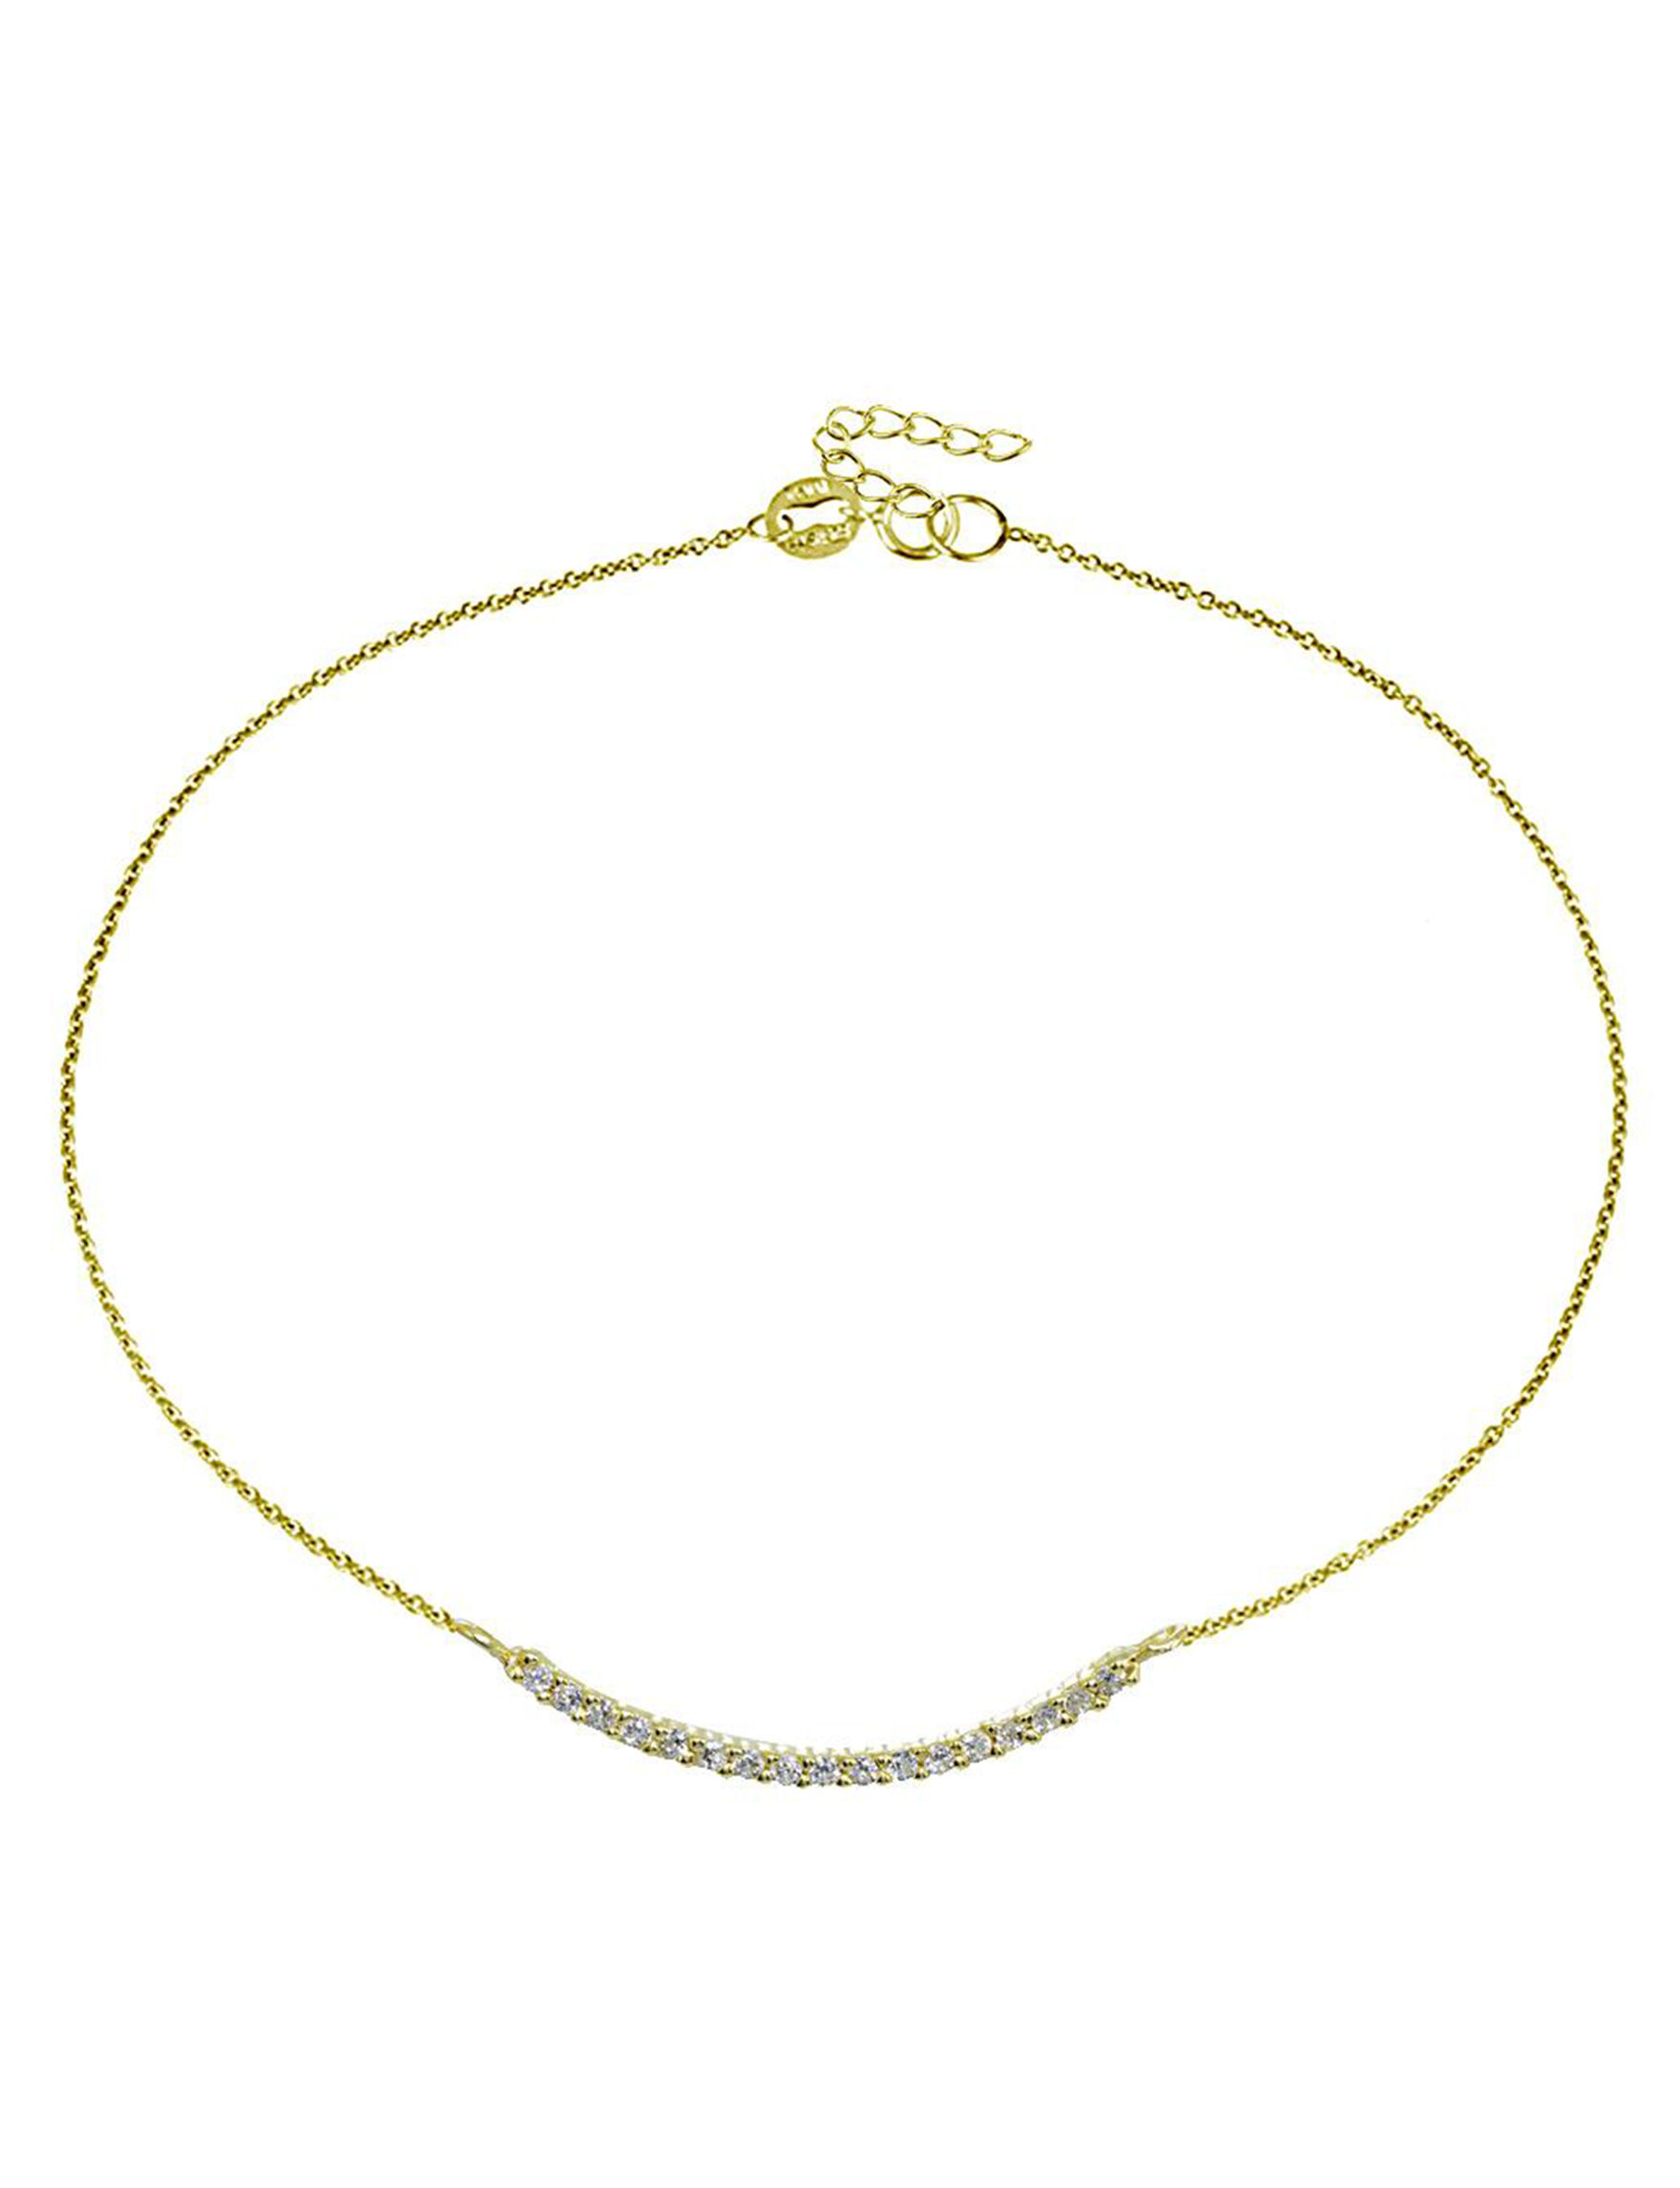 FMC Gold Anklets Fine Jewelry